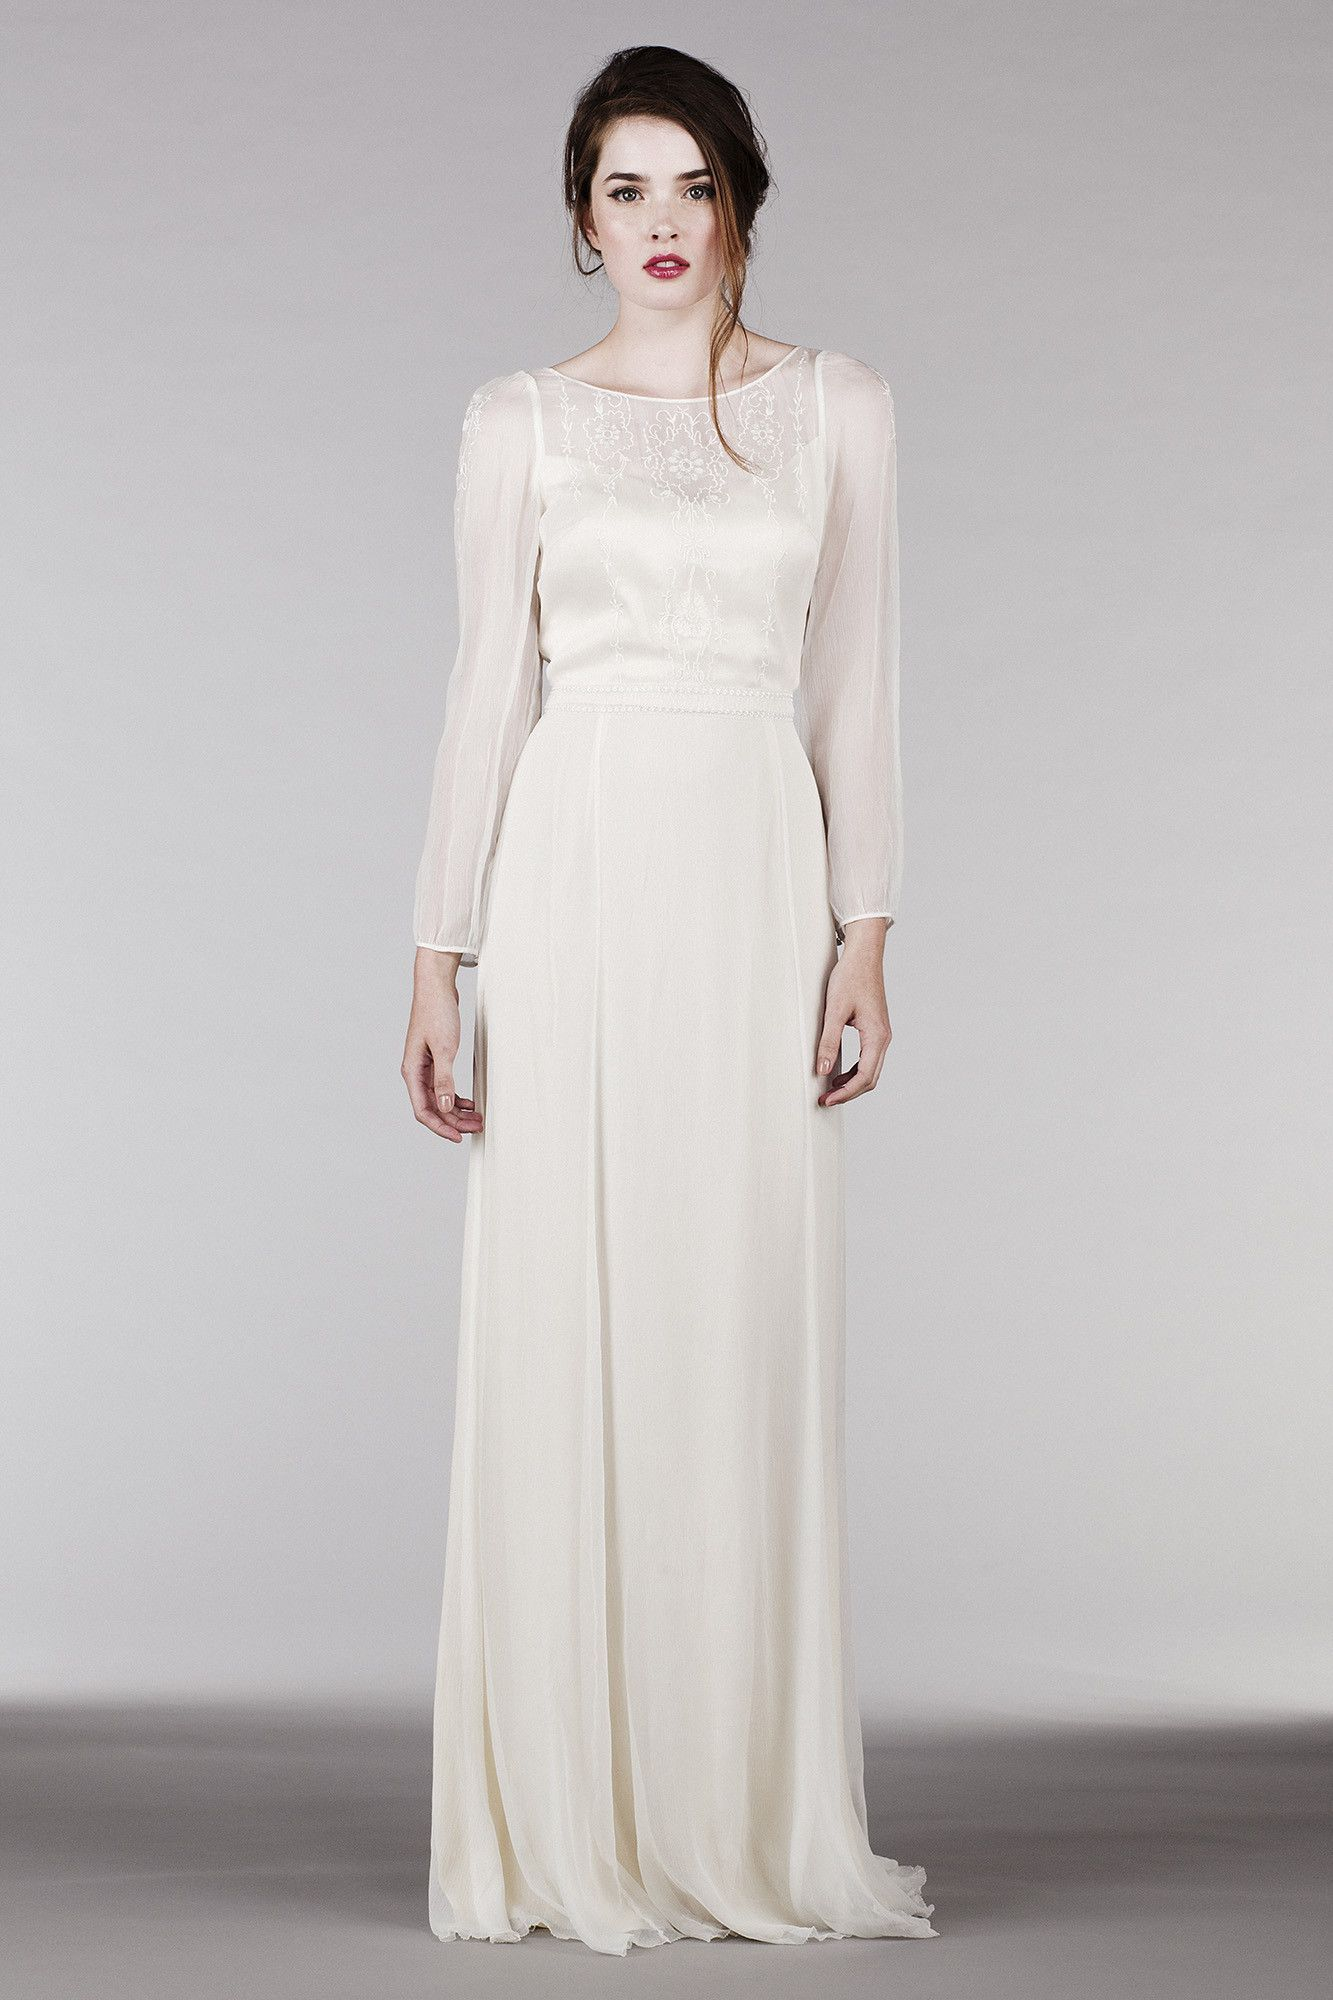 Rm long sleeved wedding dresses sleeved wedding dresses and